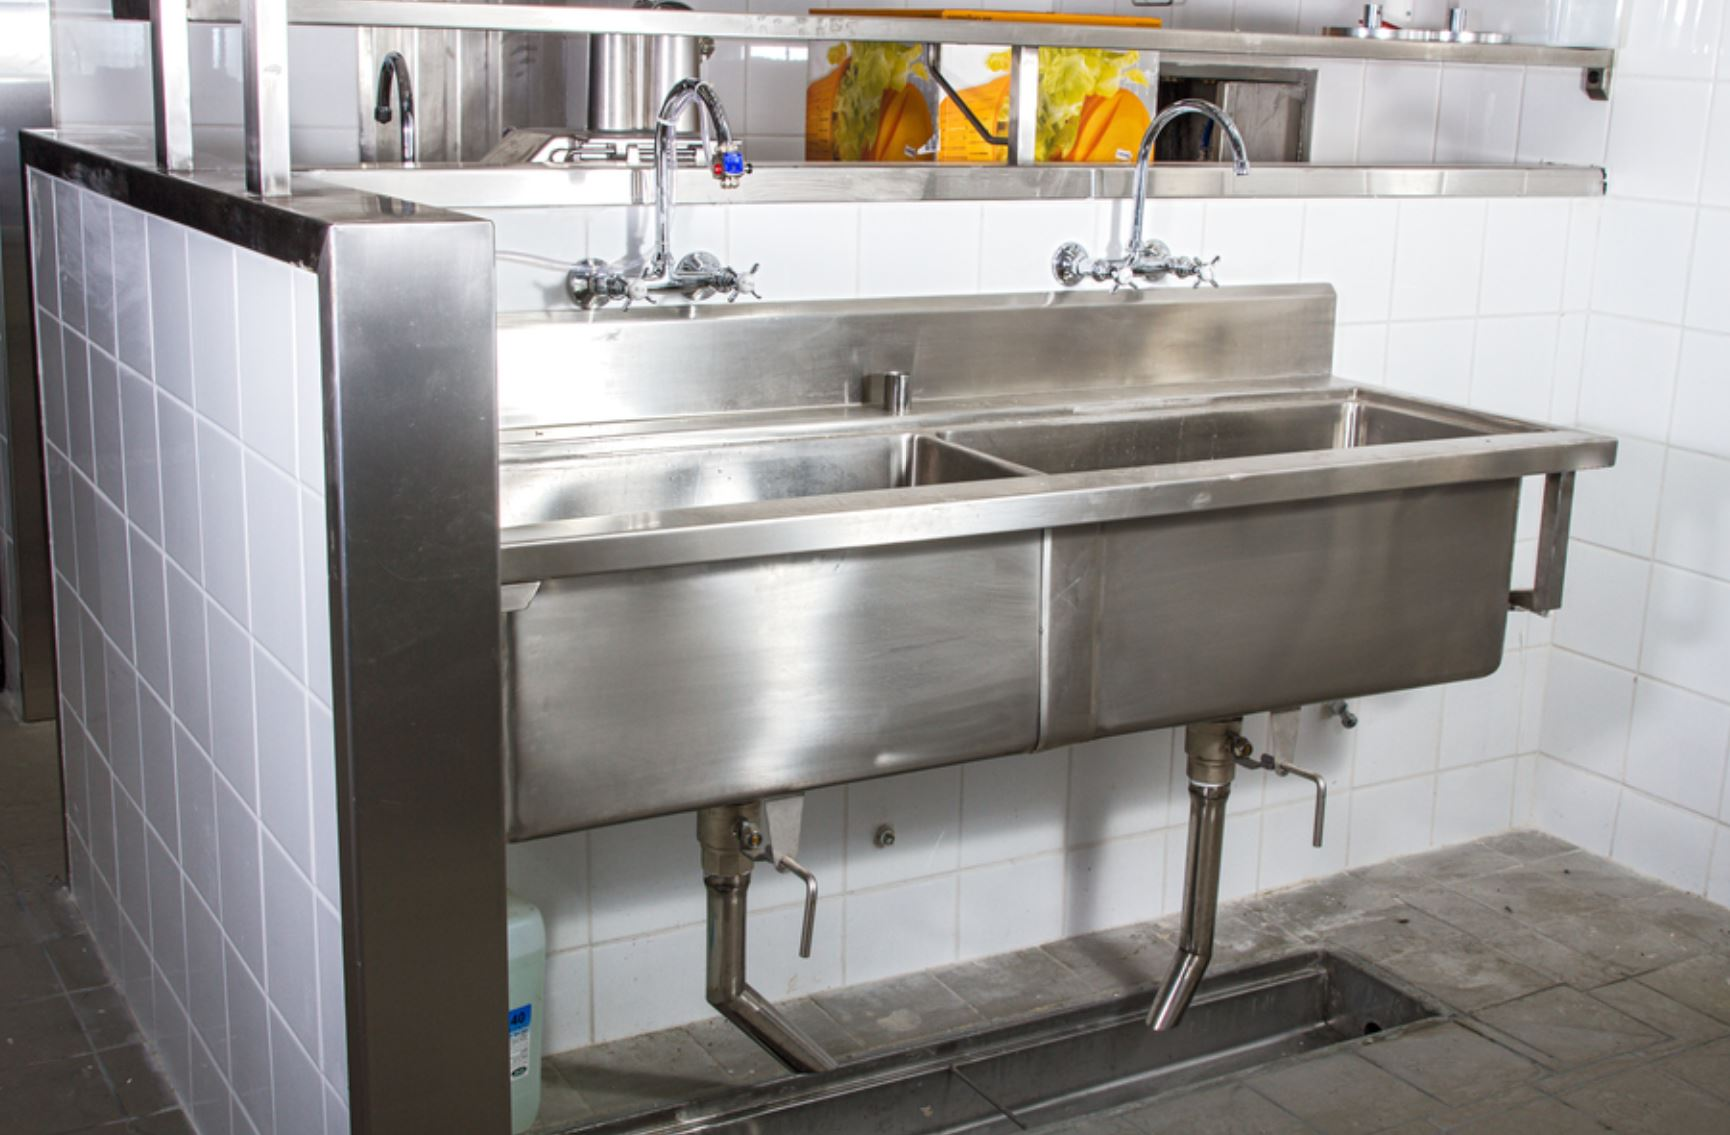 Talk to your plumber about restaurant plumbing services if you are in the restaurant or food business.